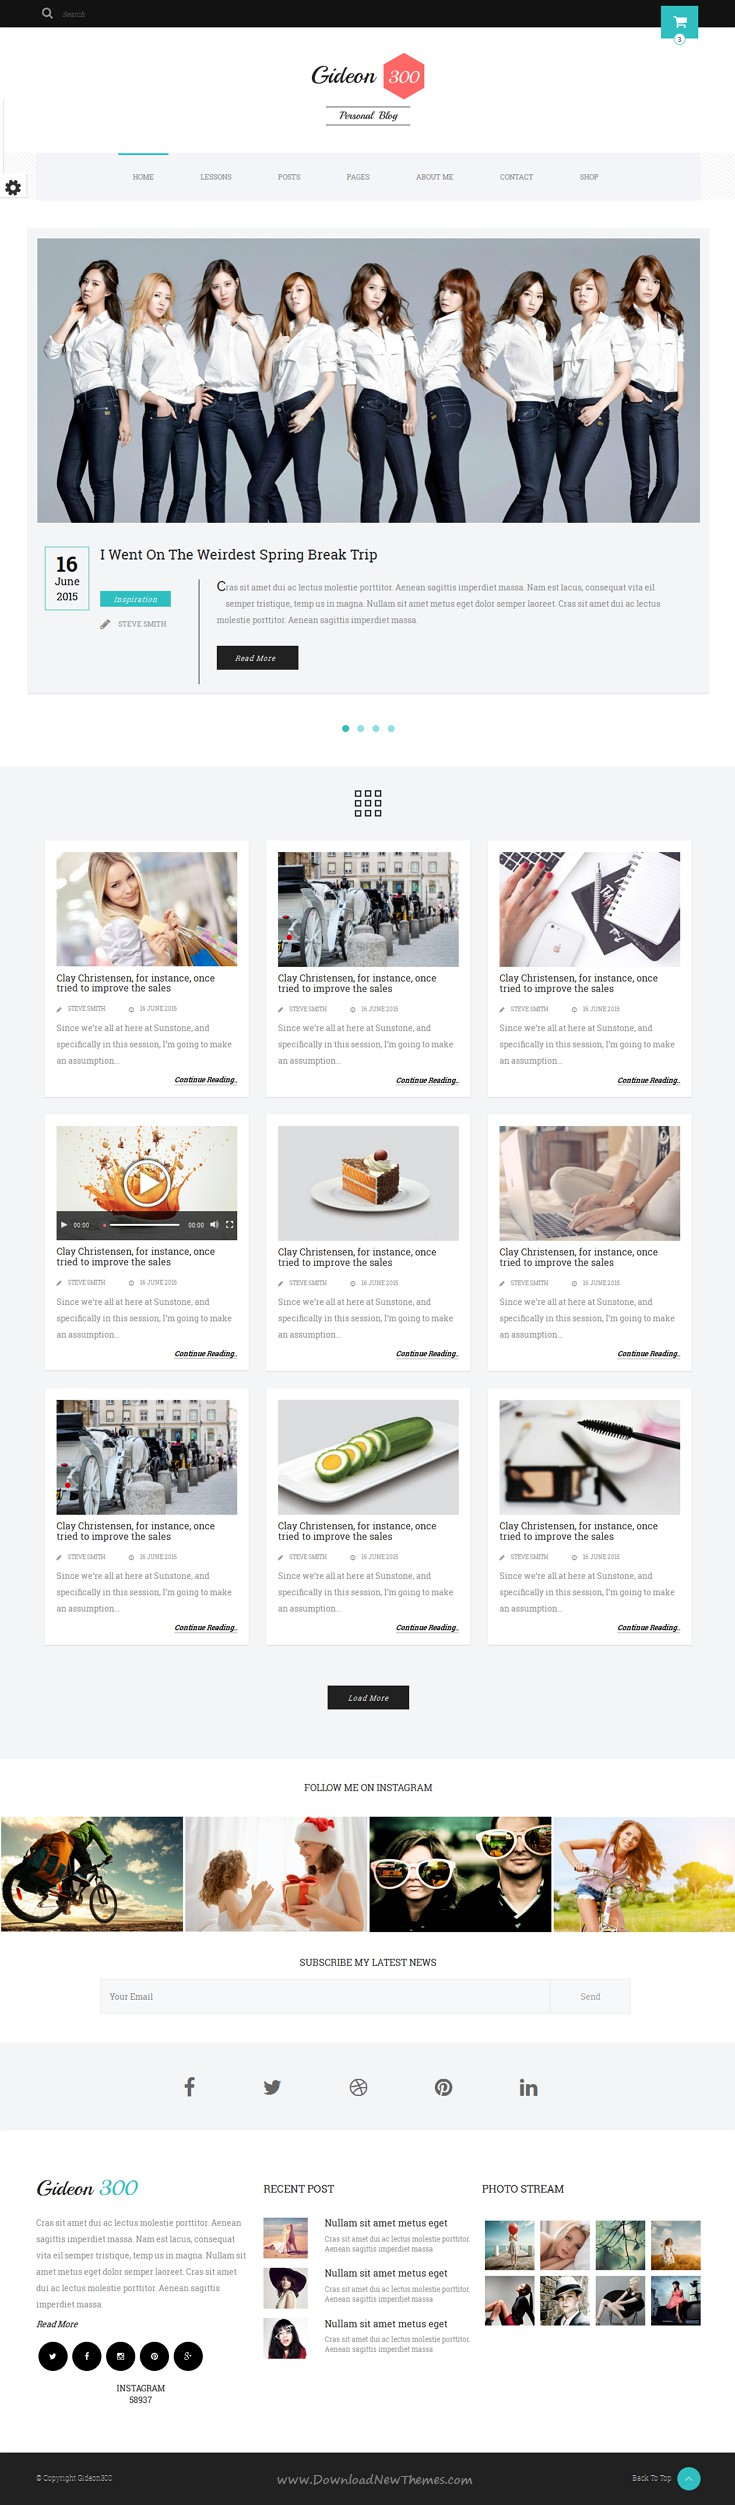 Gideon 300 - Personal Blog, LMS and eCommerce HTML Template ...